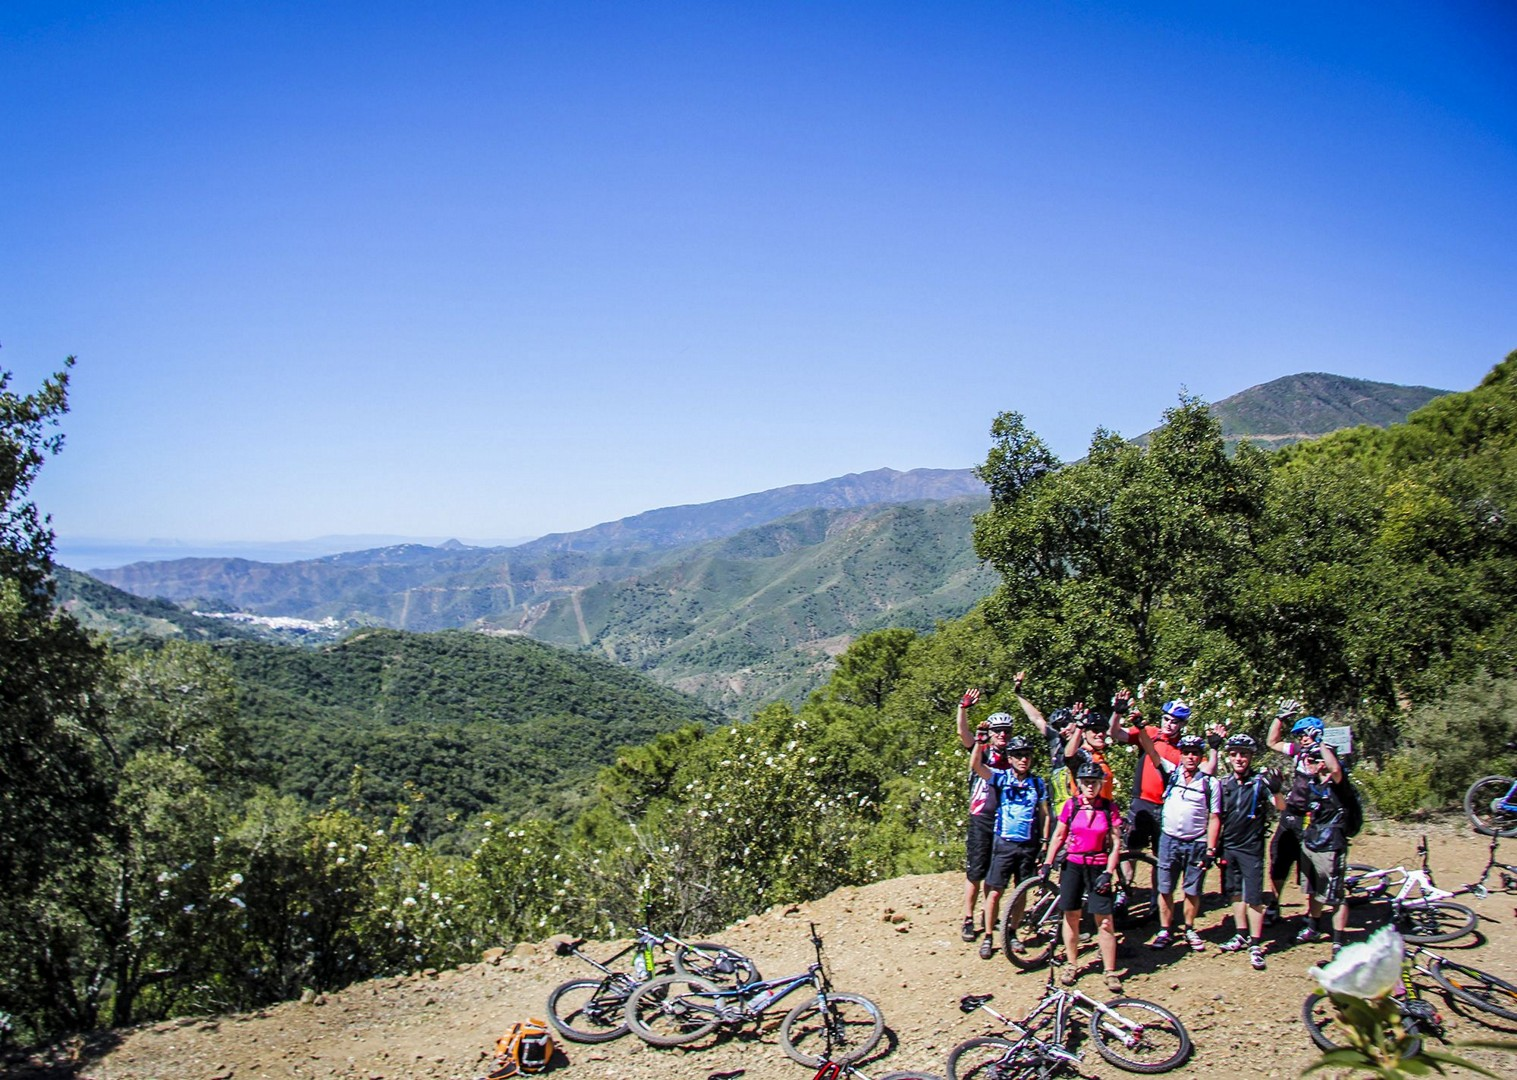 guided-mountain-biking-andalucia-spain-holiday.jpg - Spain - Awesome Andalucia - Guided Mountain Bike Holiday - Mountain Biking